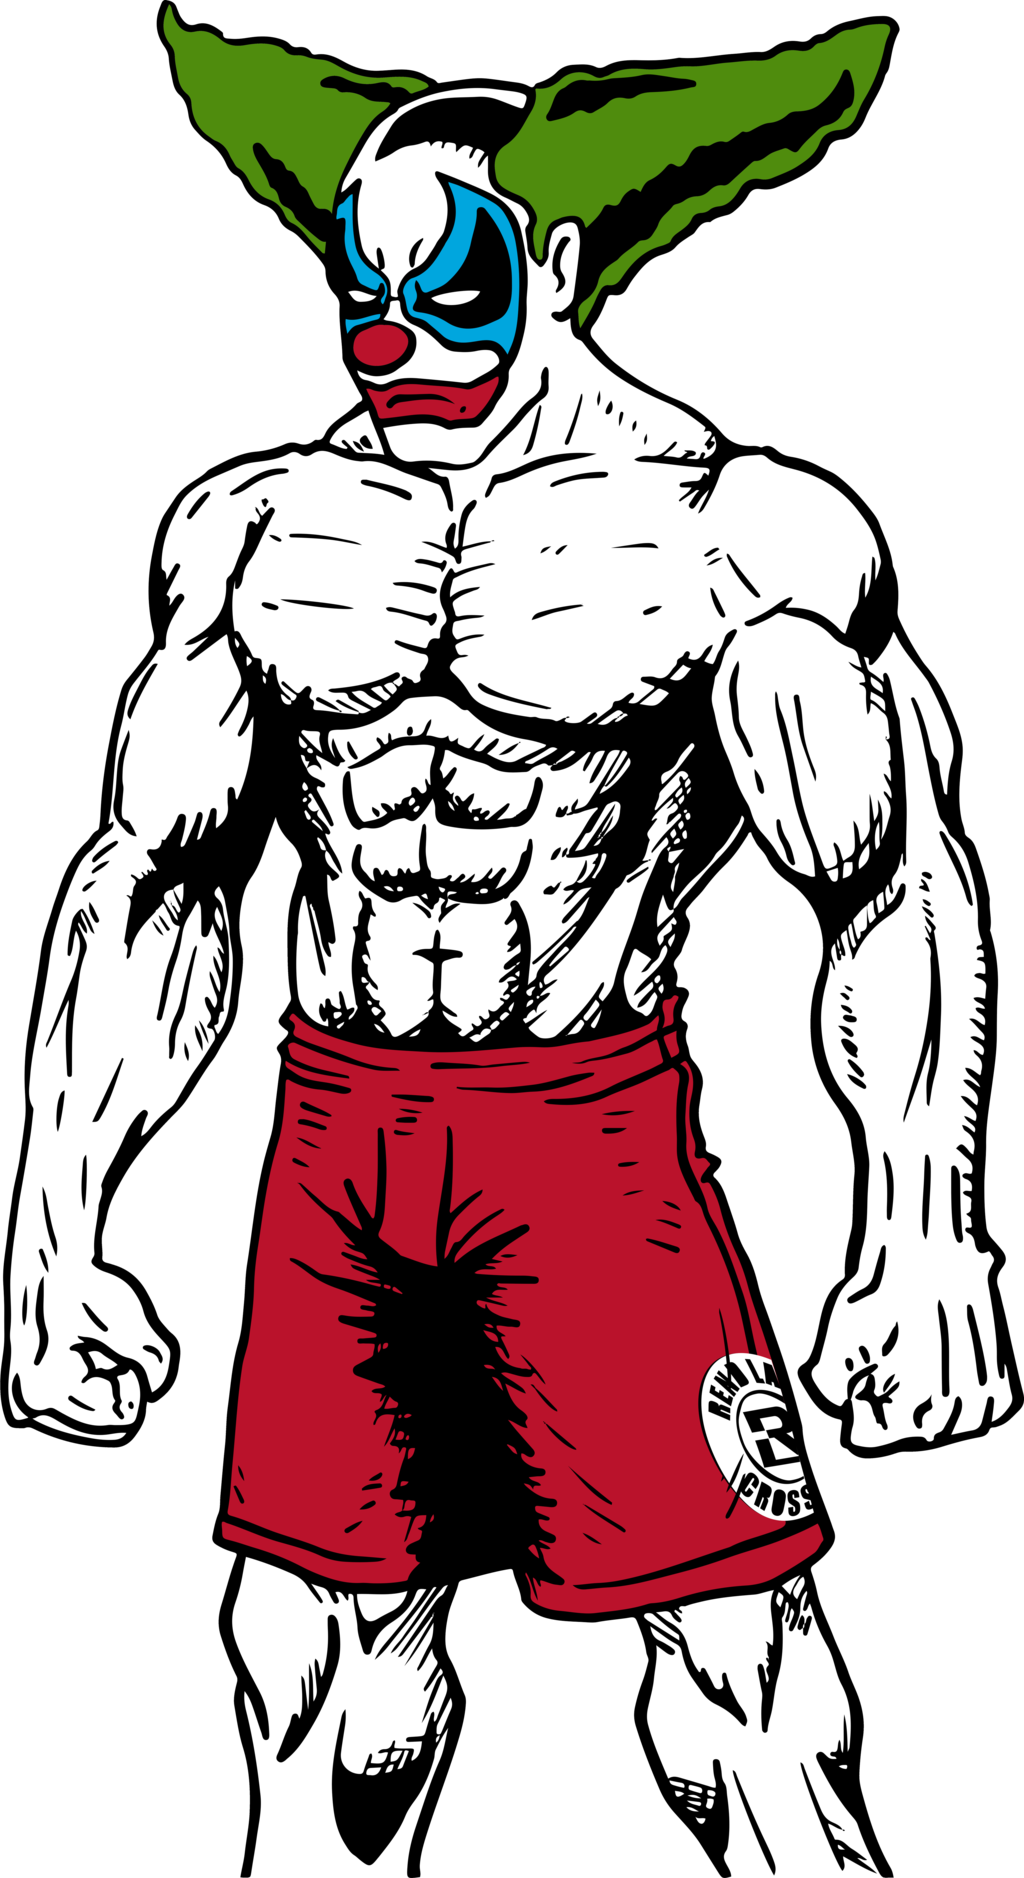 Gym clipart buff. Pukey the clown lookin